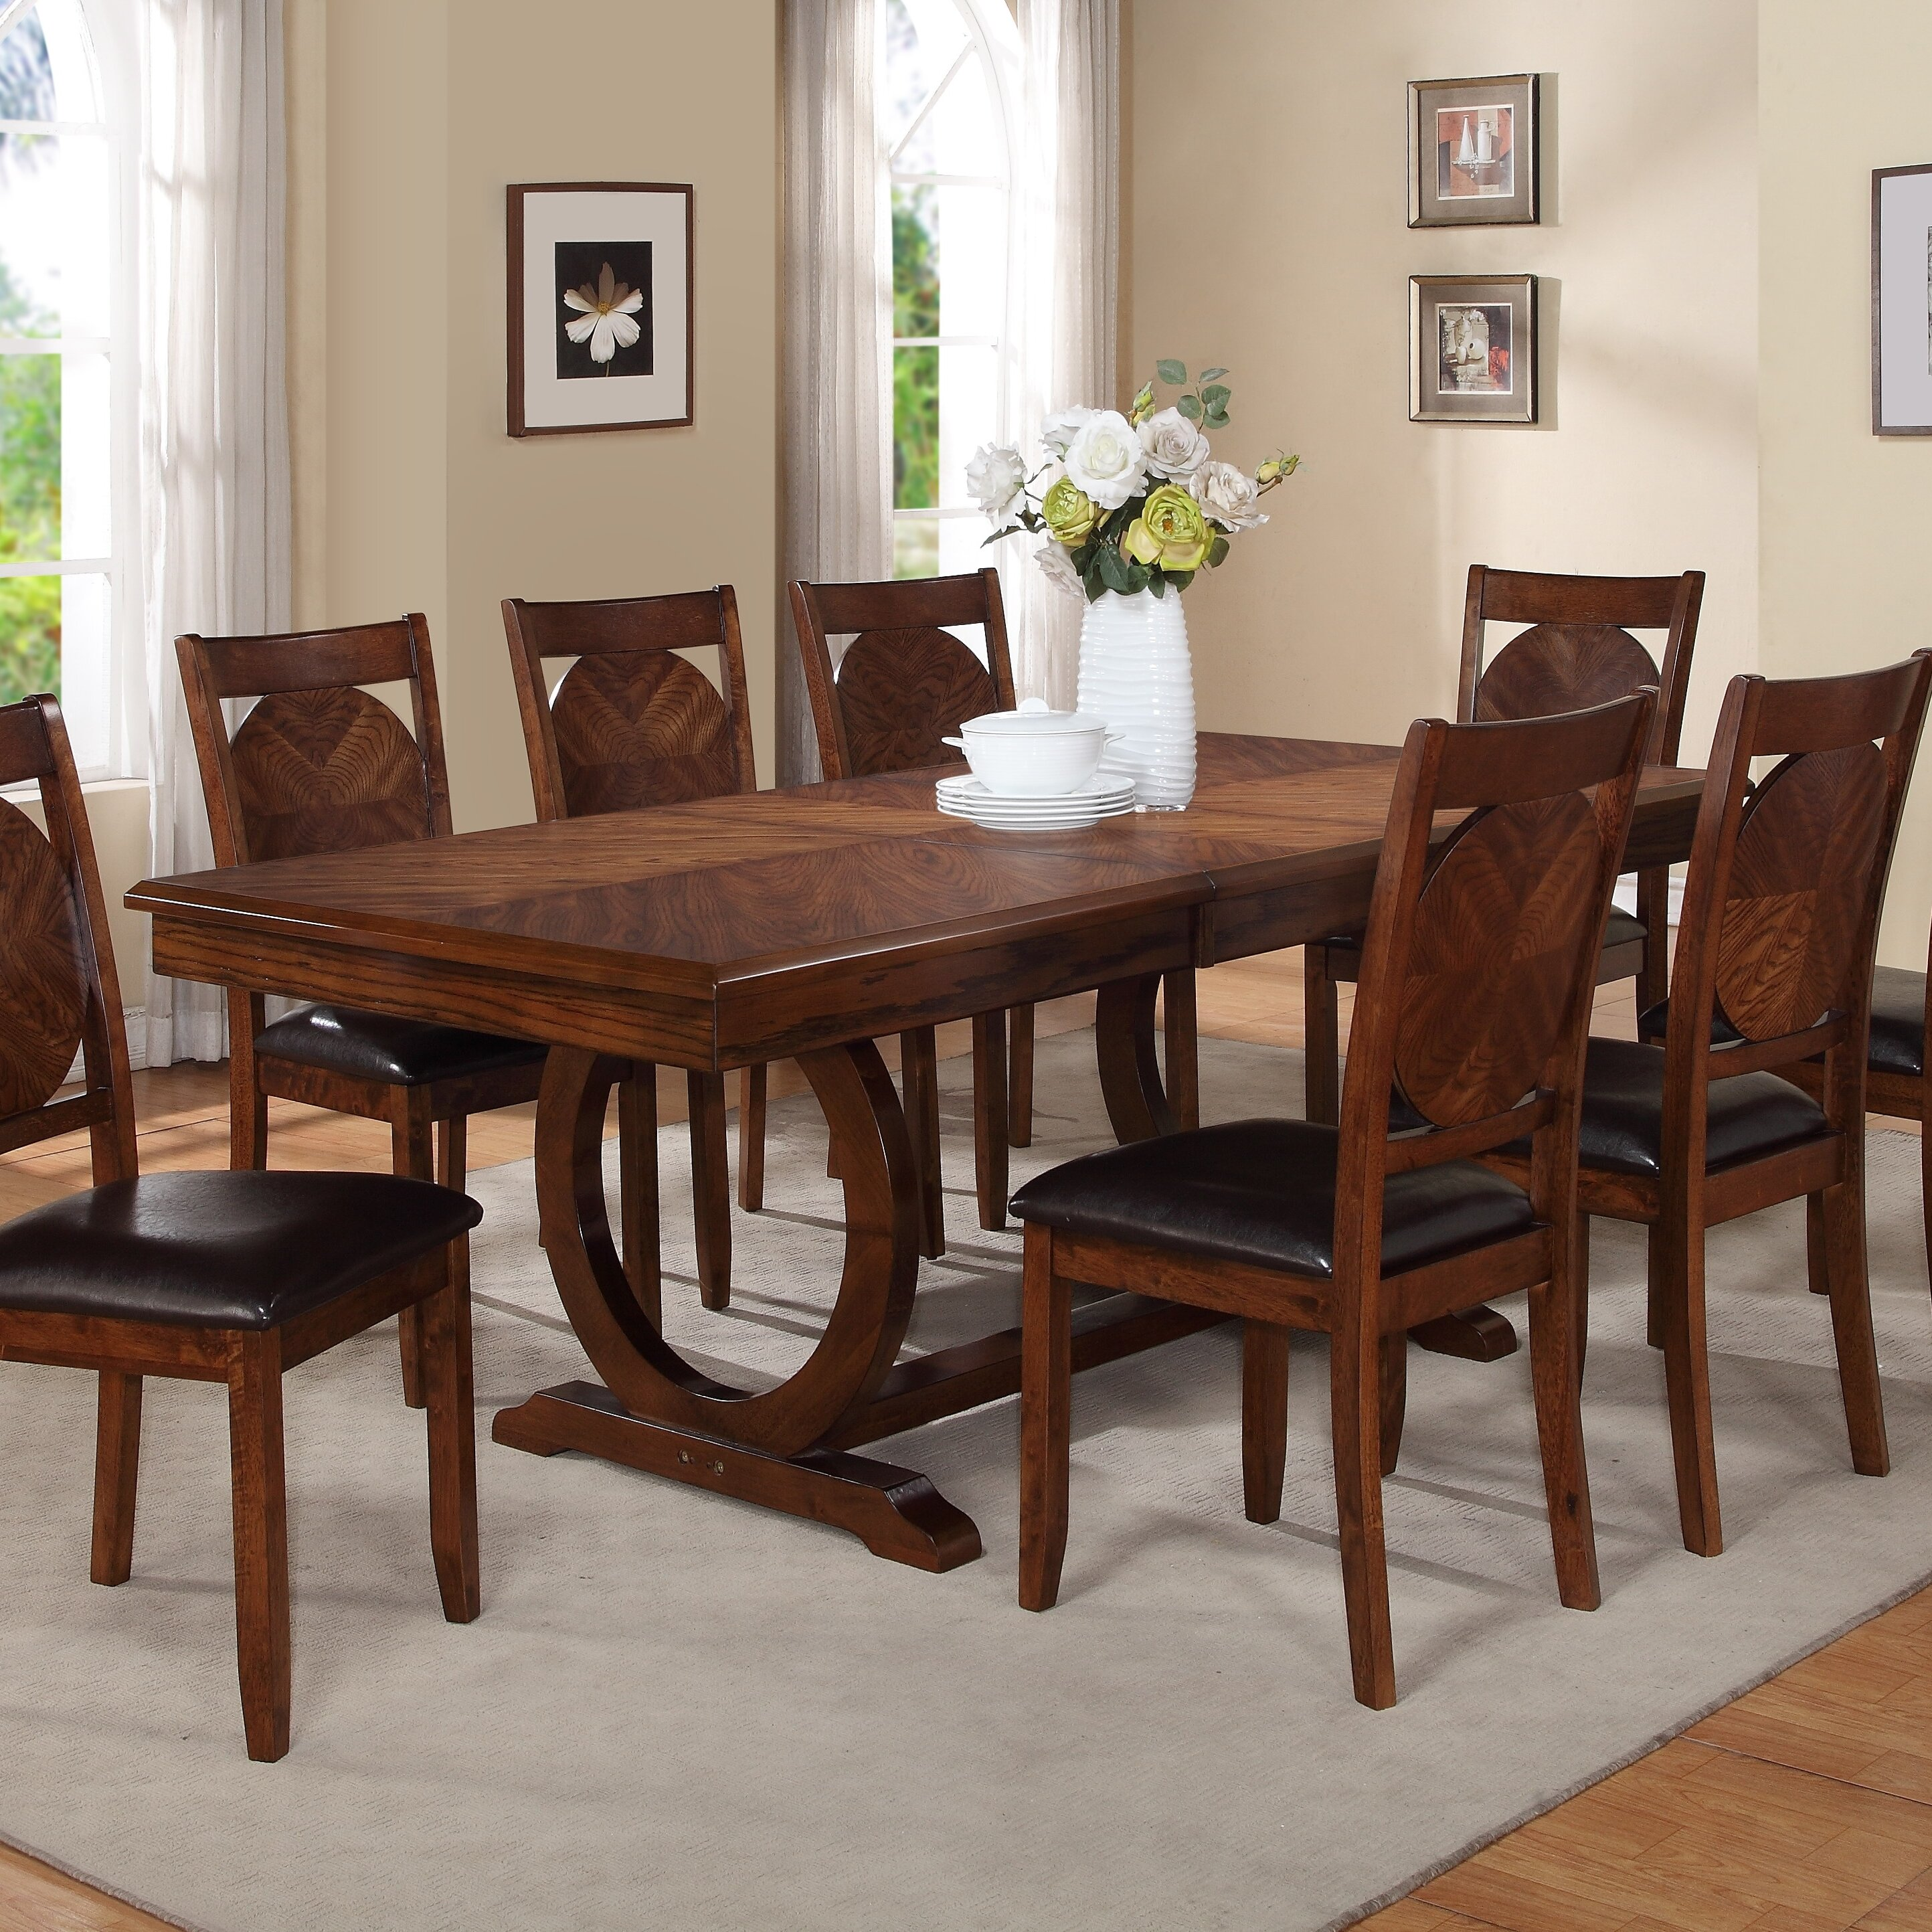 World menagerie kapoor extendable dining table reviews for Kitchen dining room chairs